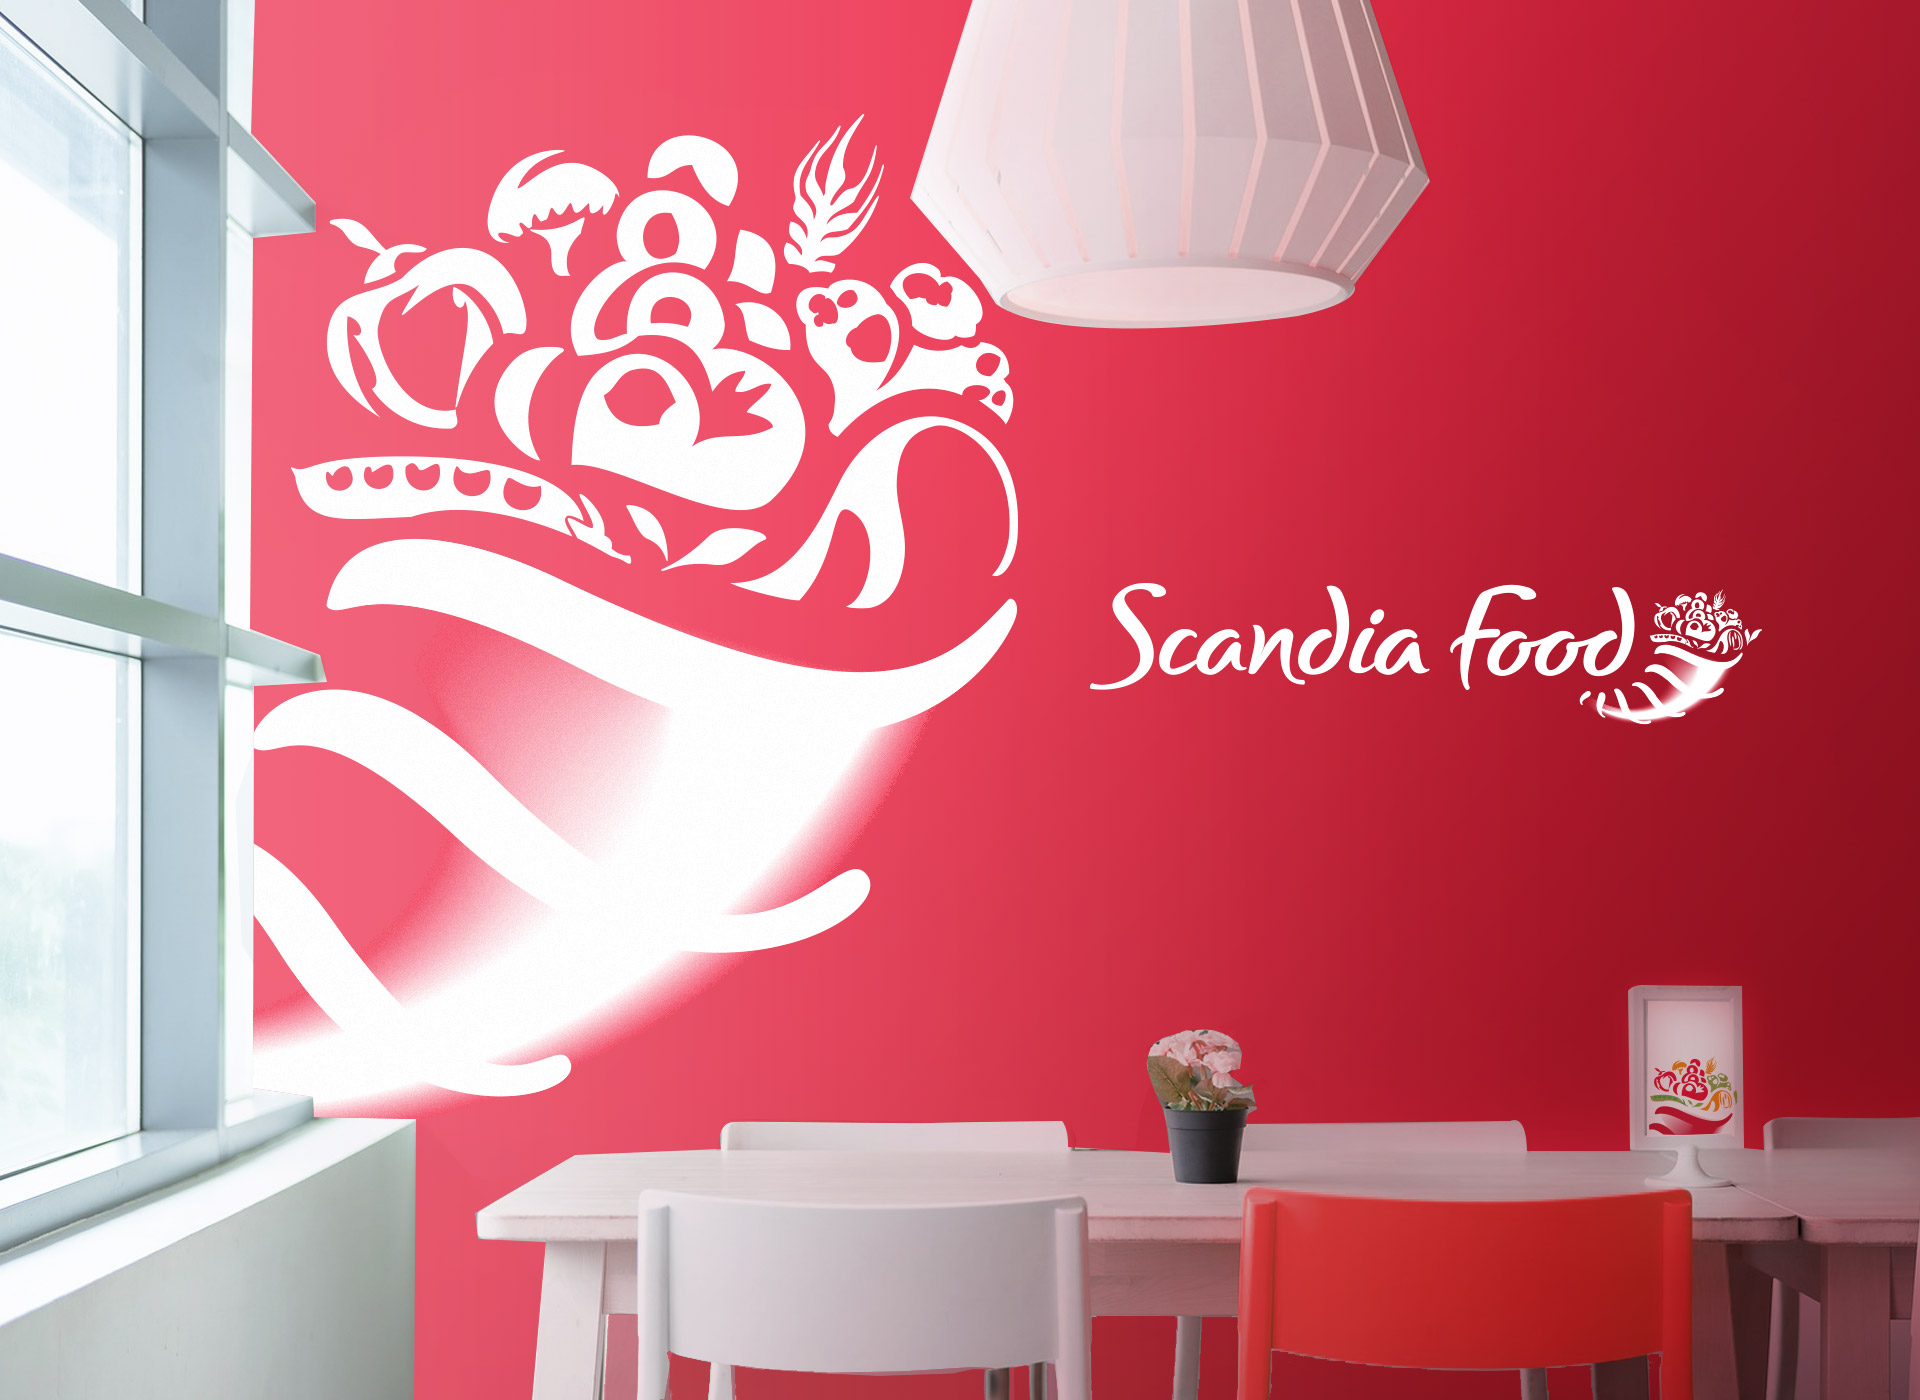 scandia food rebranding corn